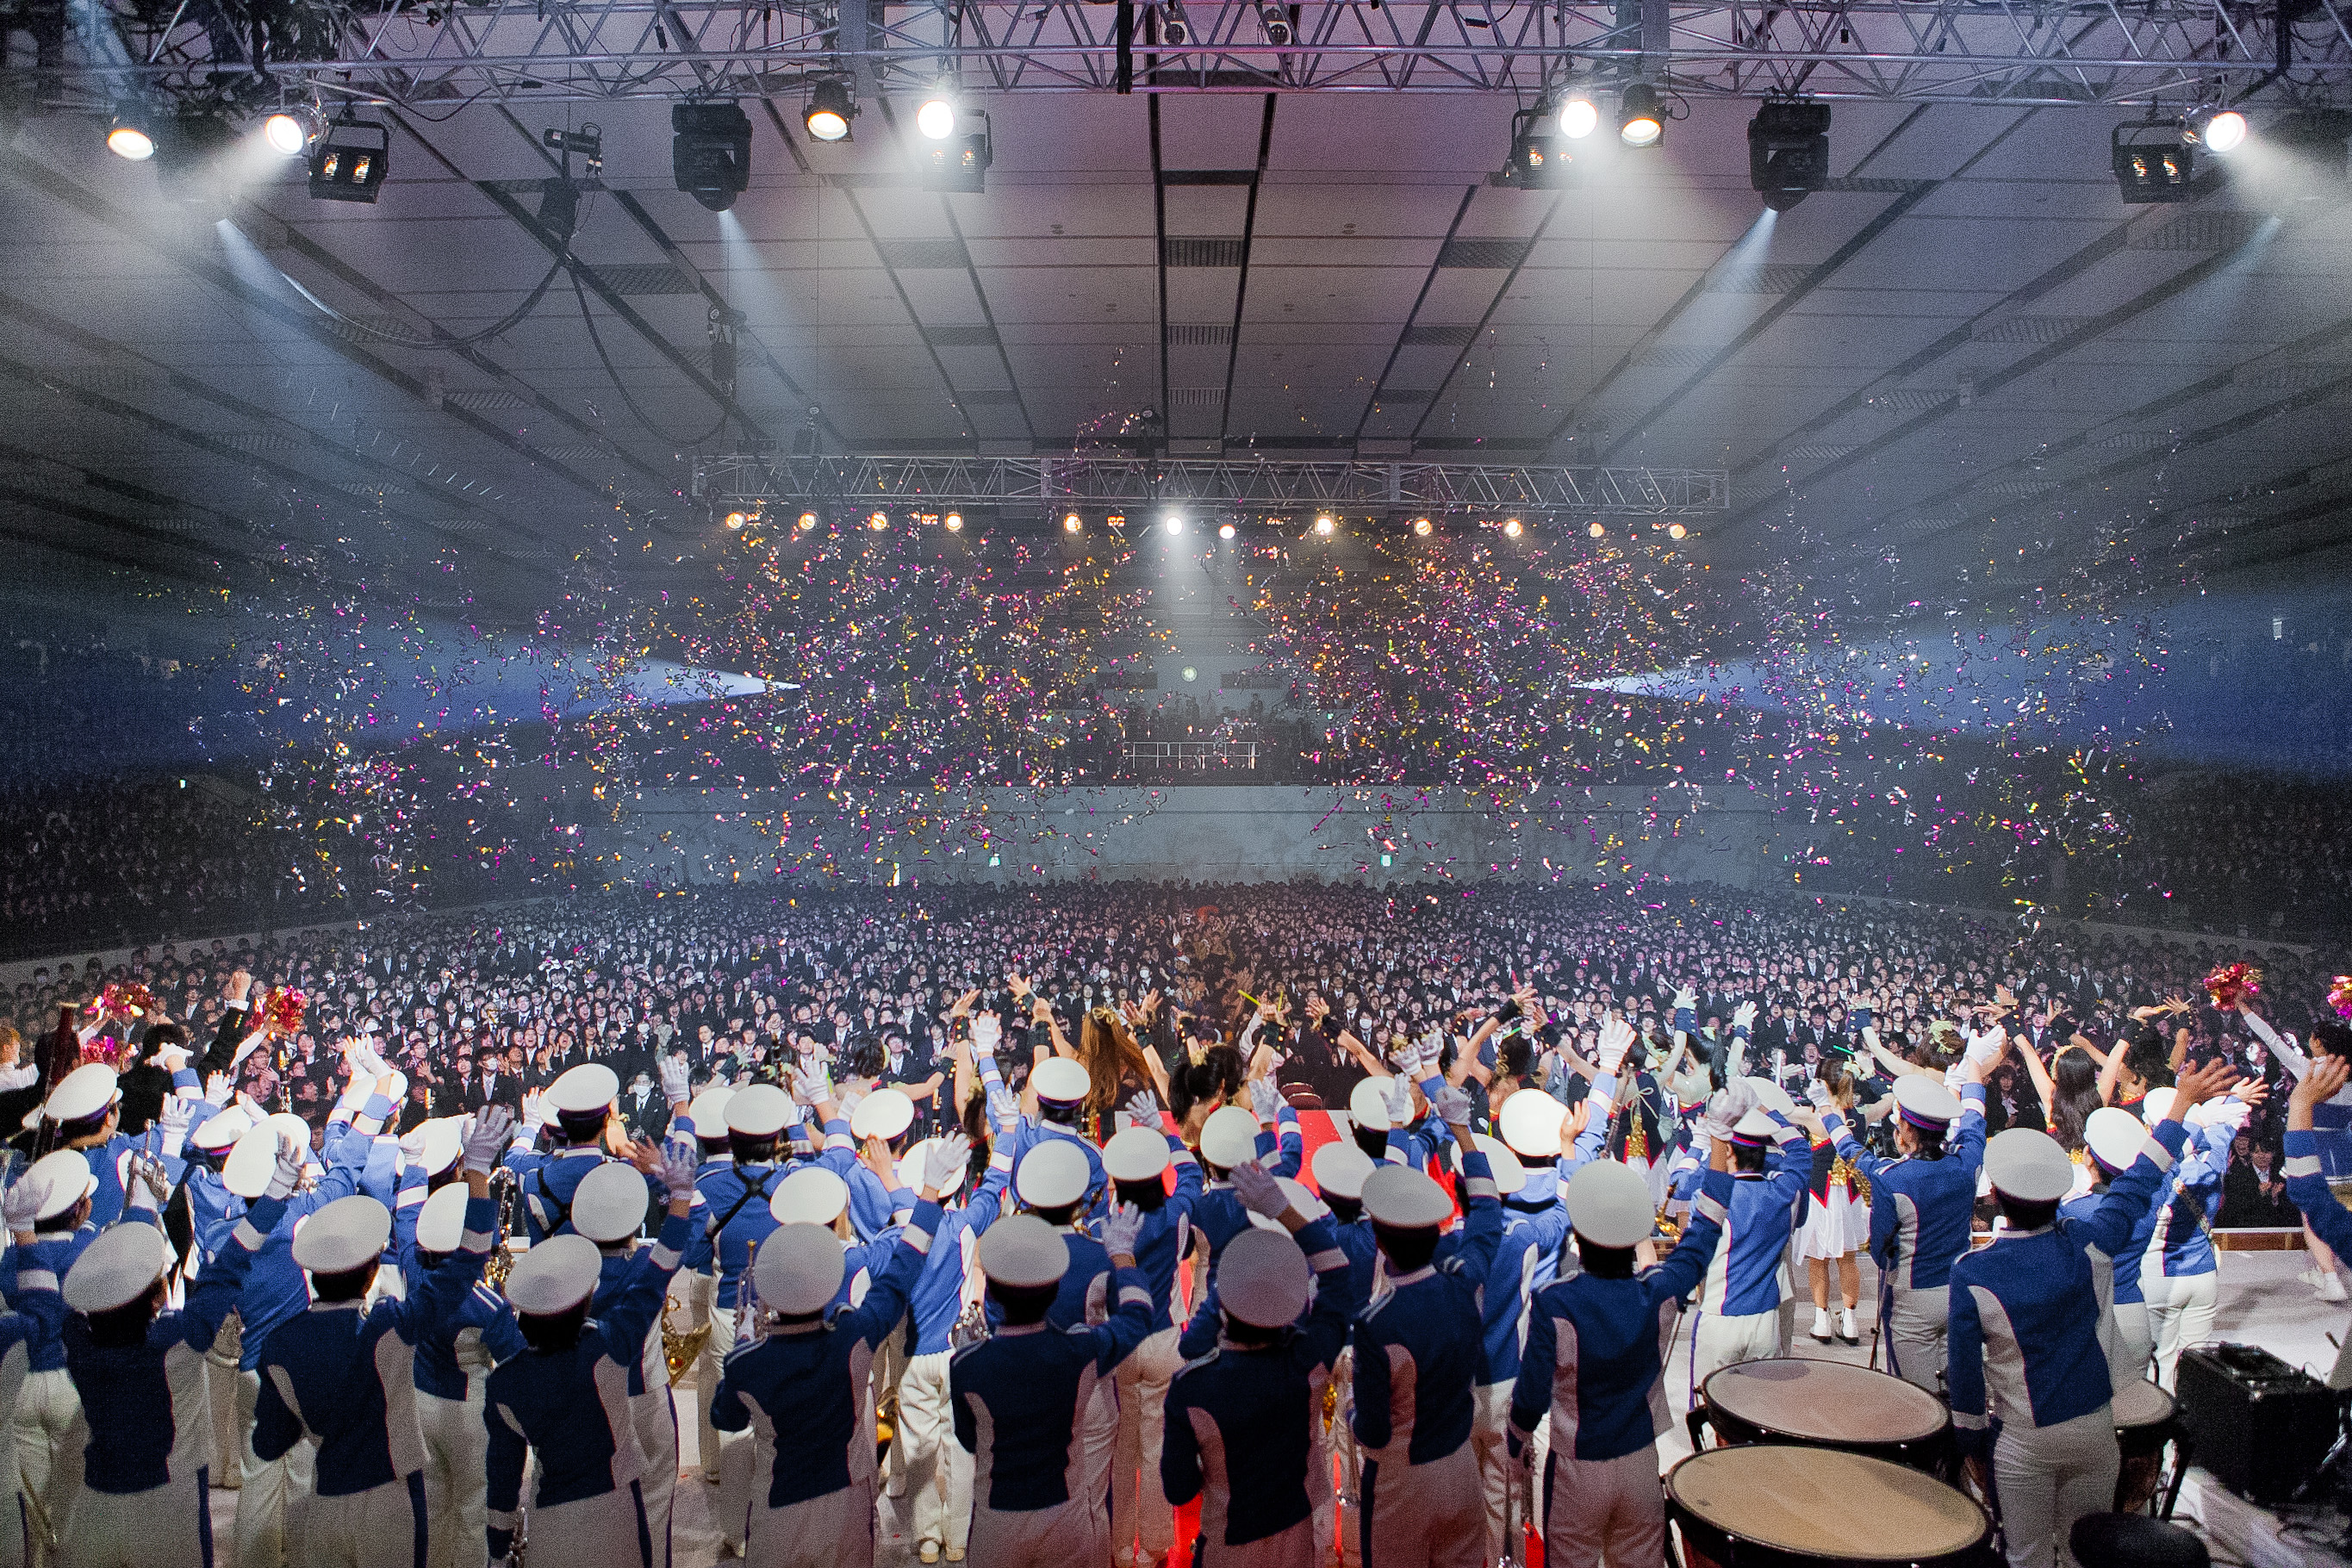 7,000 Freshmen Welcomed at Entrance Ceremony (Source: The Japan News)